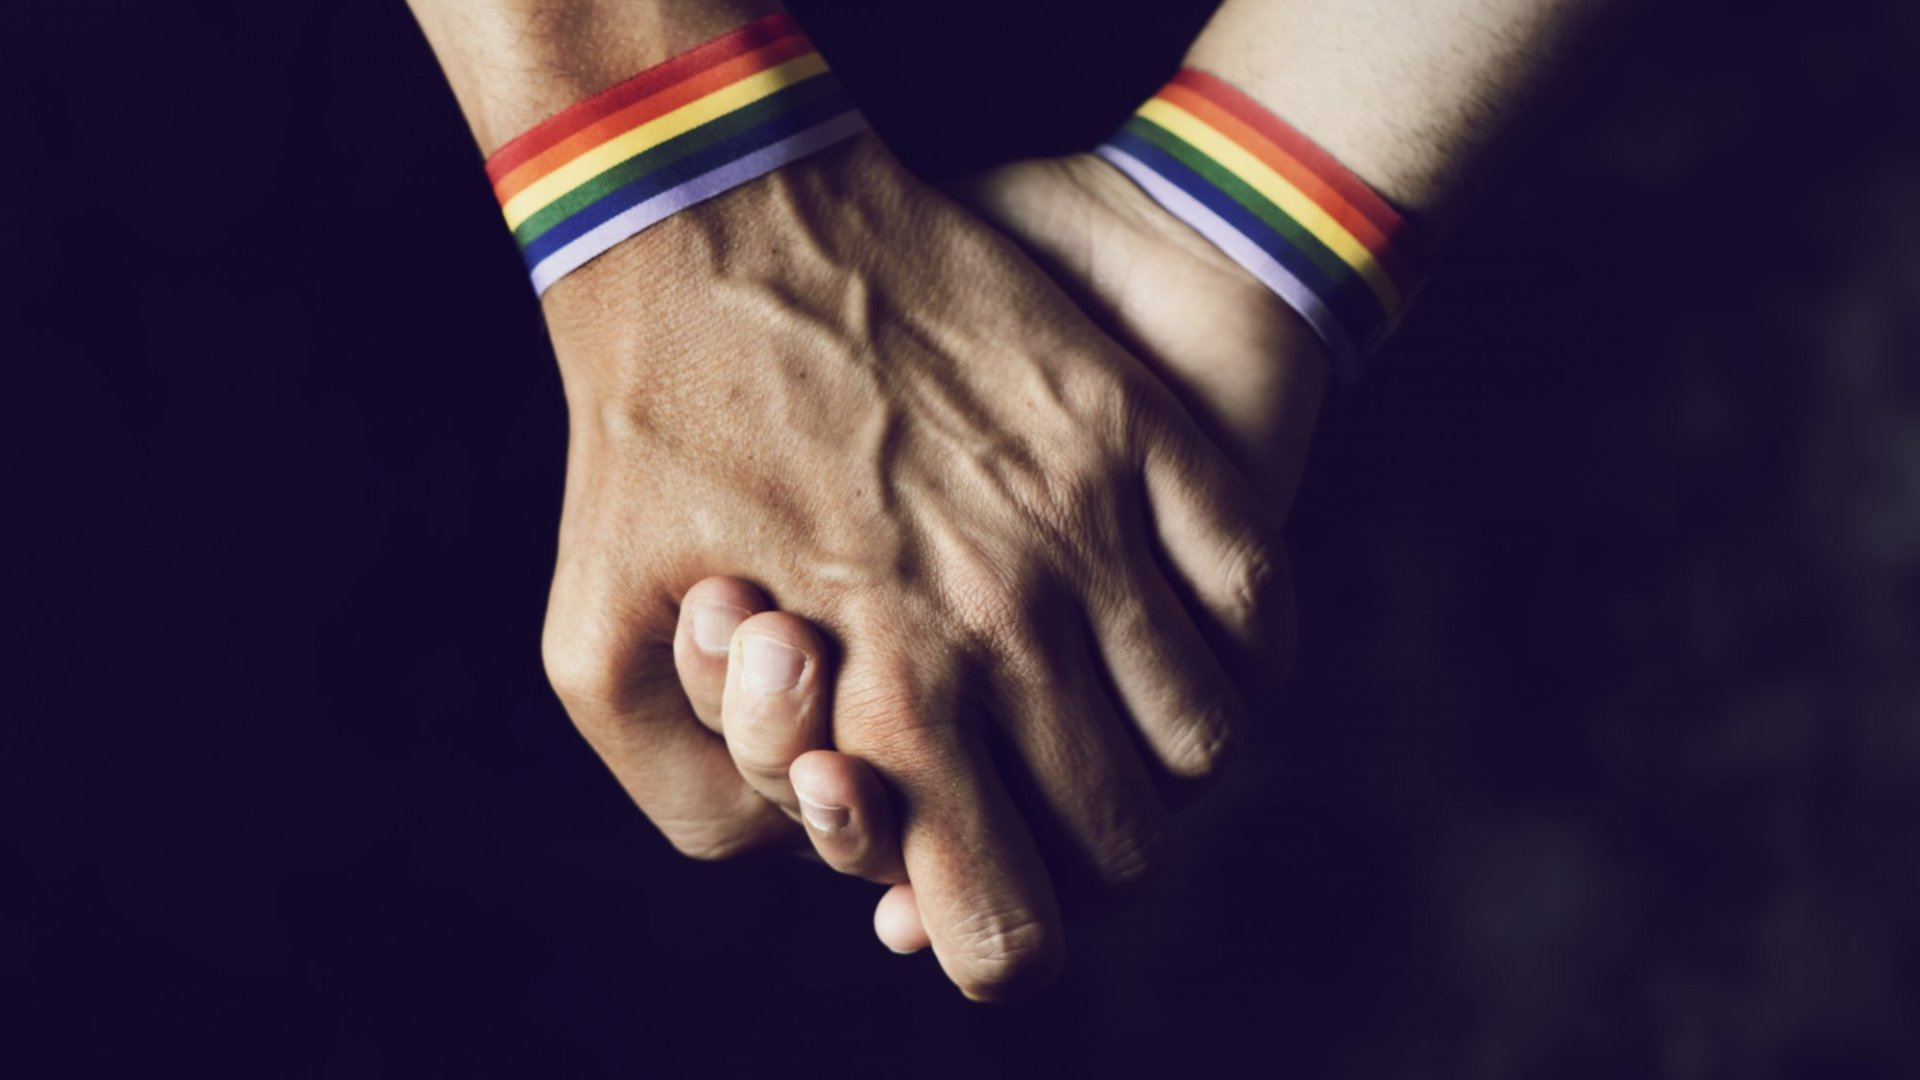 How to Build a More Inclusive Workplace Culture This Pride Month (and Beyond)